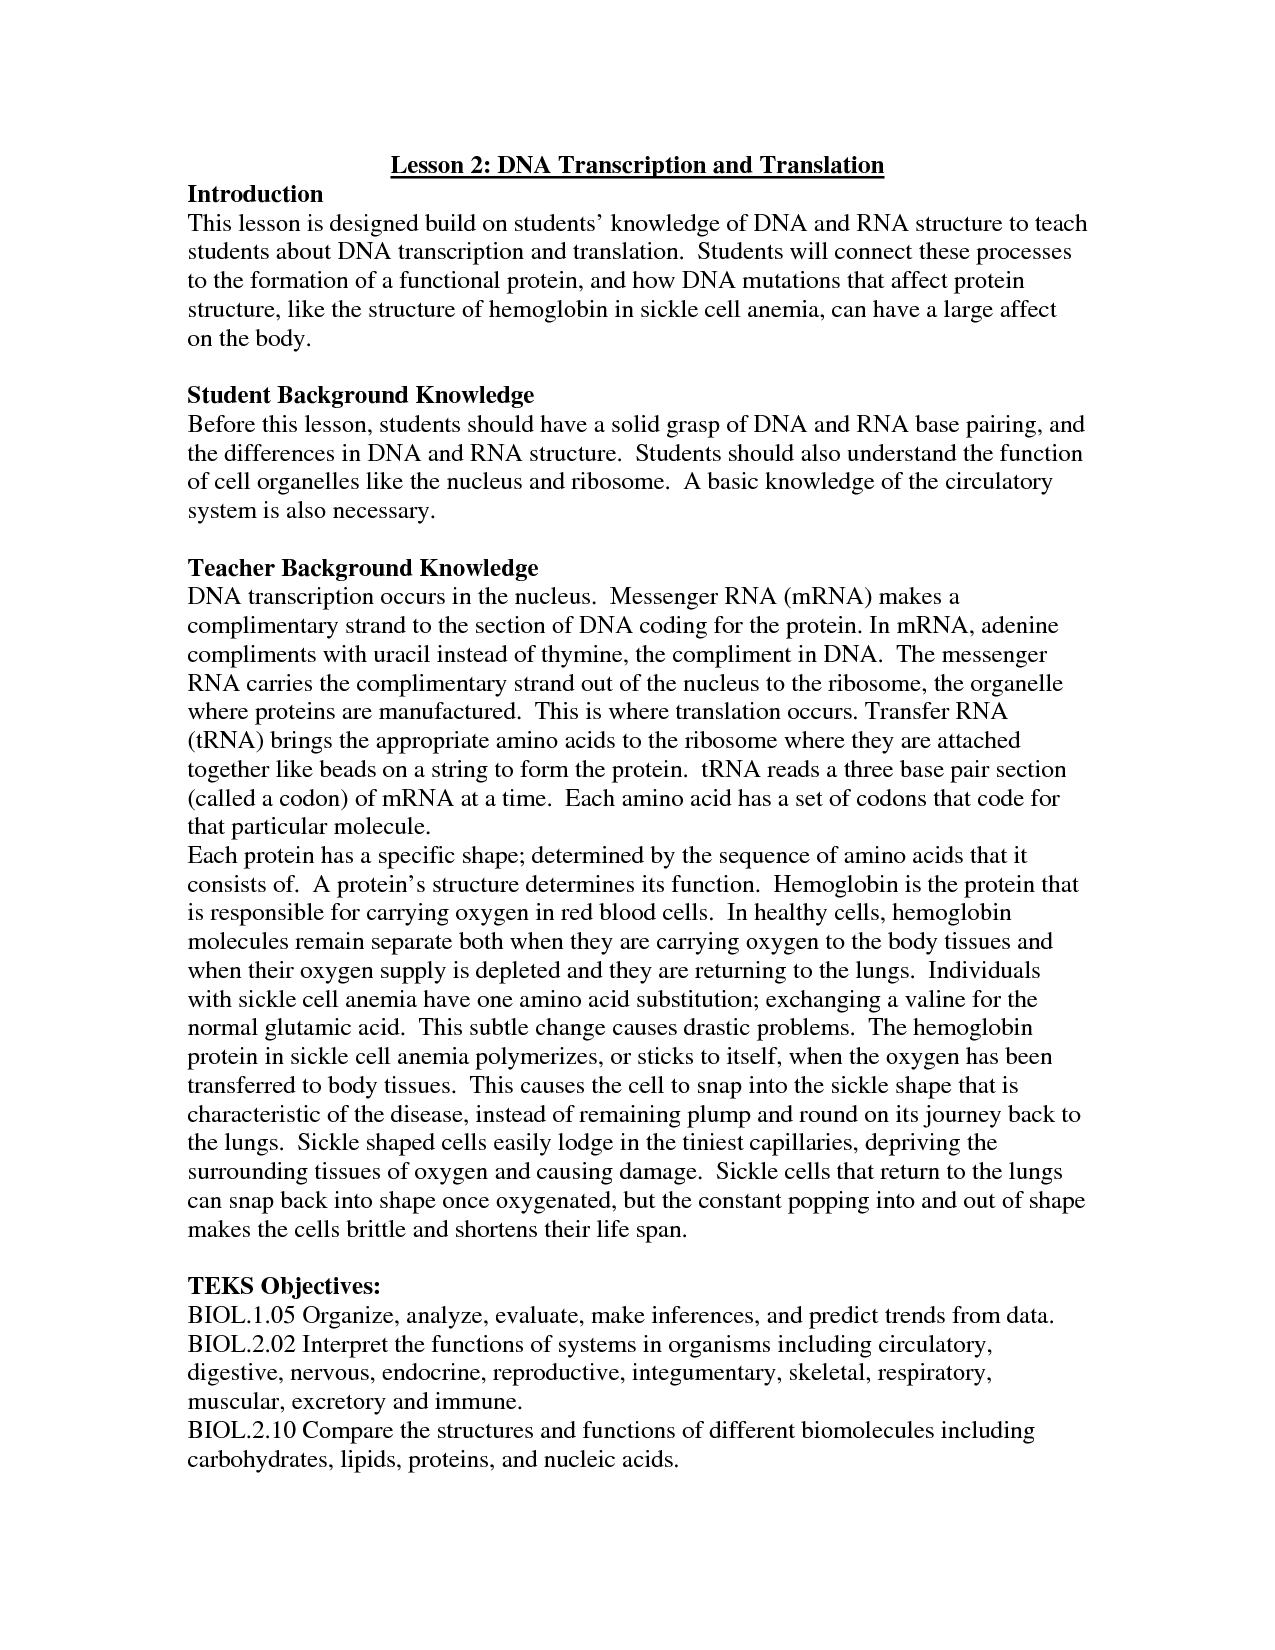 Transcription And Translation Worksheet Homeschooldressage